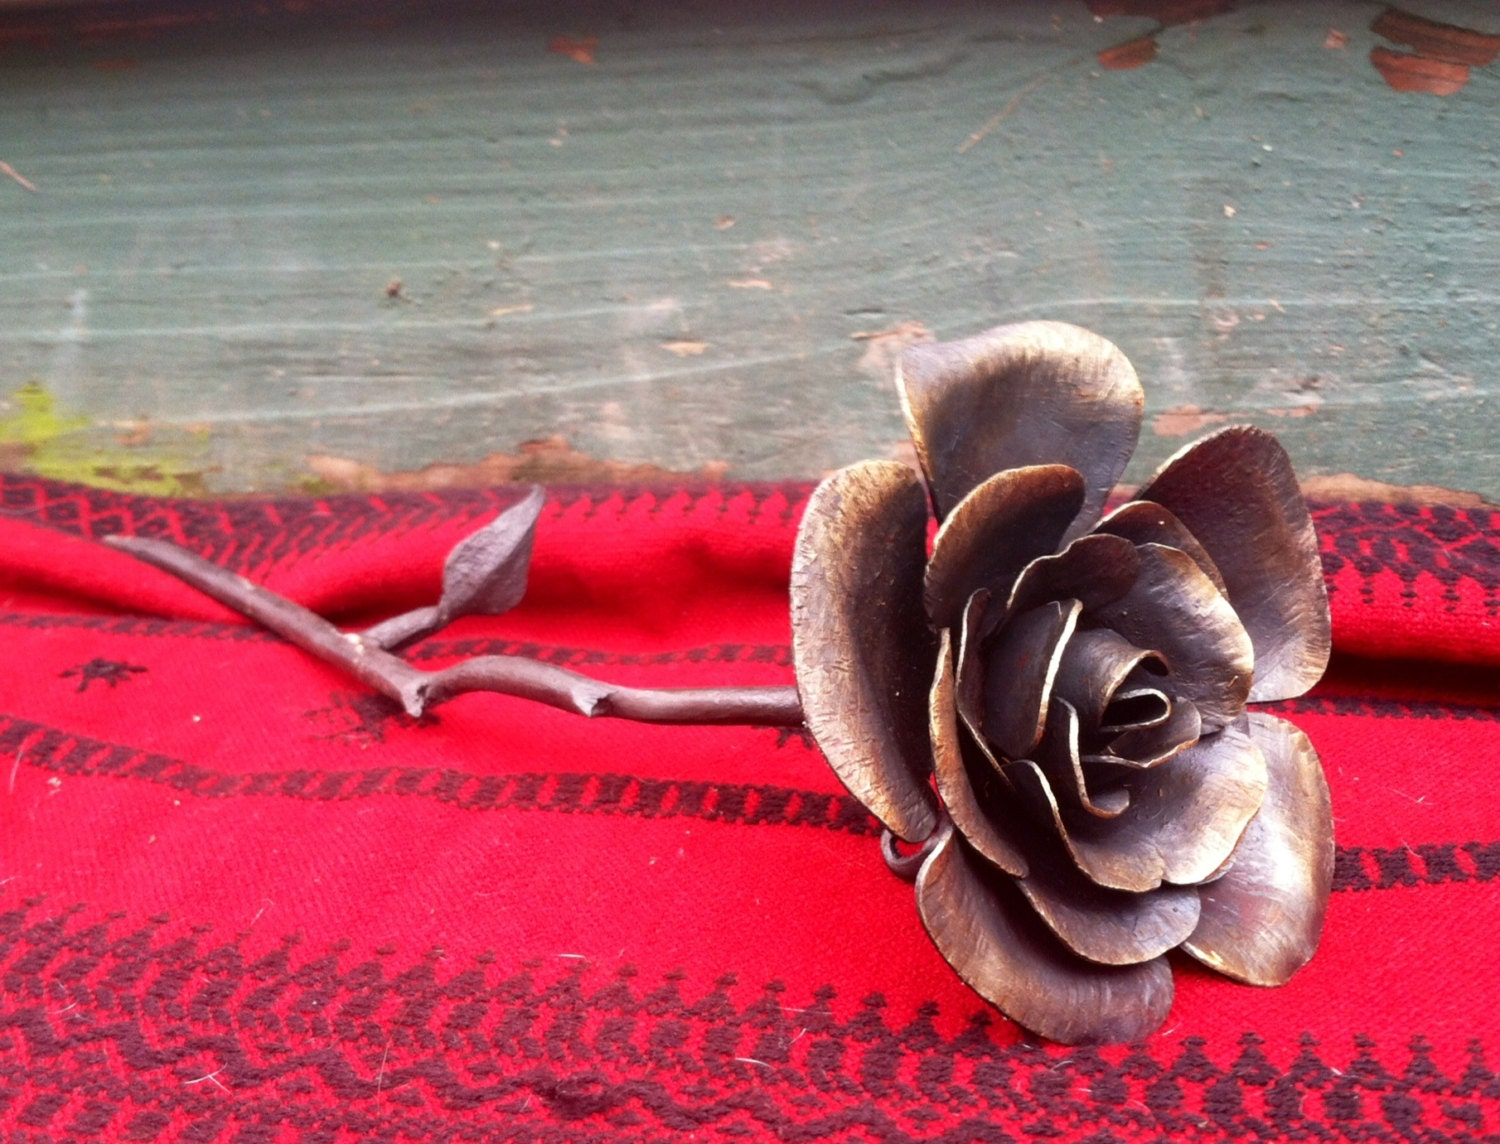 6th Wedding Anniversary Traditional Gifts: Iron Forged Rose 6th Anniversary Gift Metal Rose Rose Iron